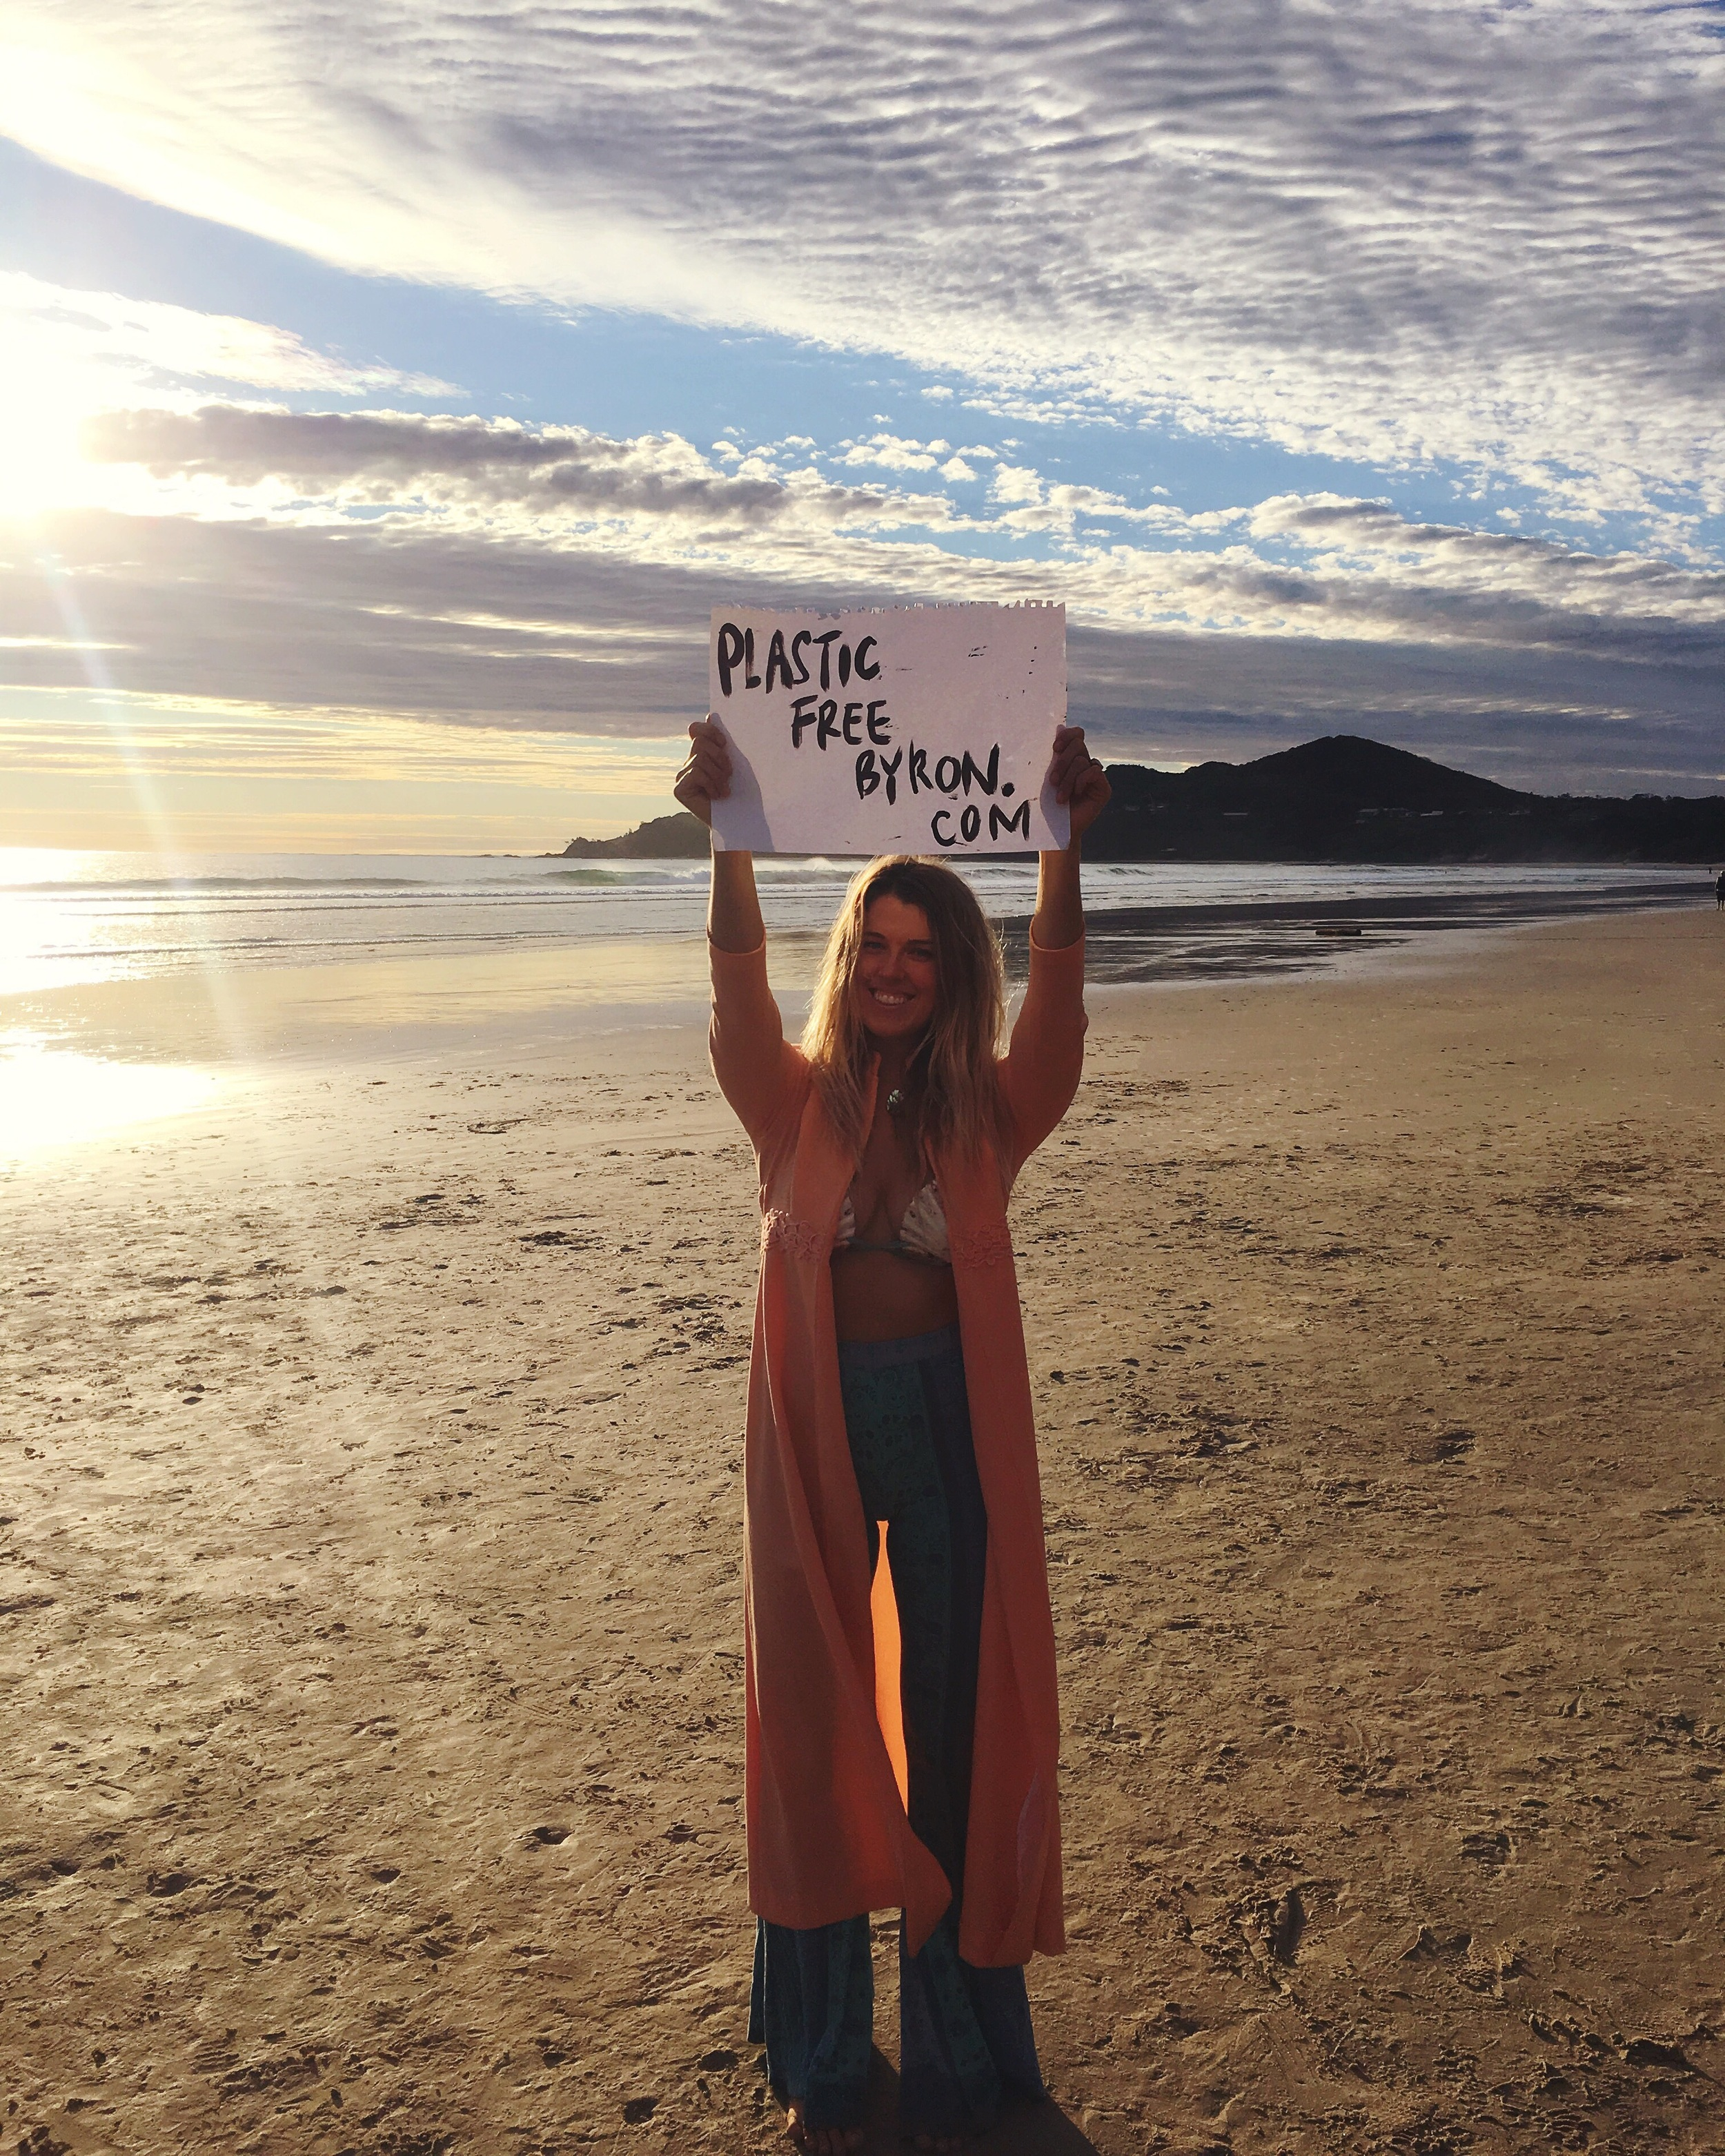 Byron locals are encouraged to register for Plastic Free July at plasticfreebyron.com for events, discounts, good vibes!